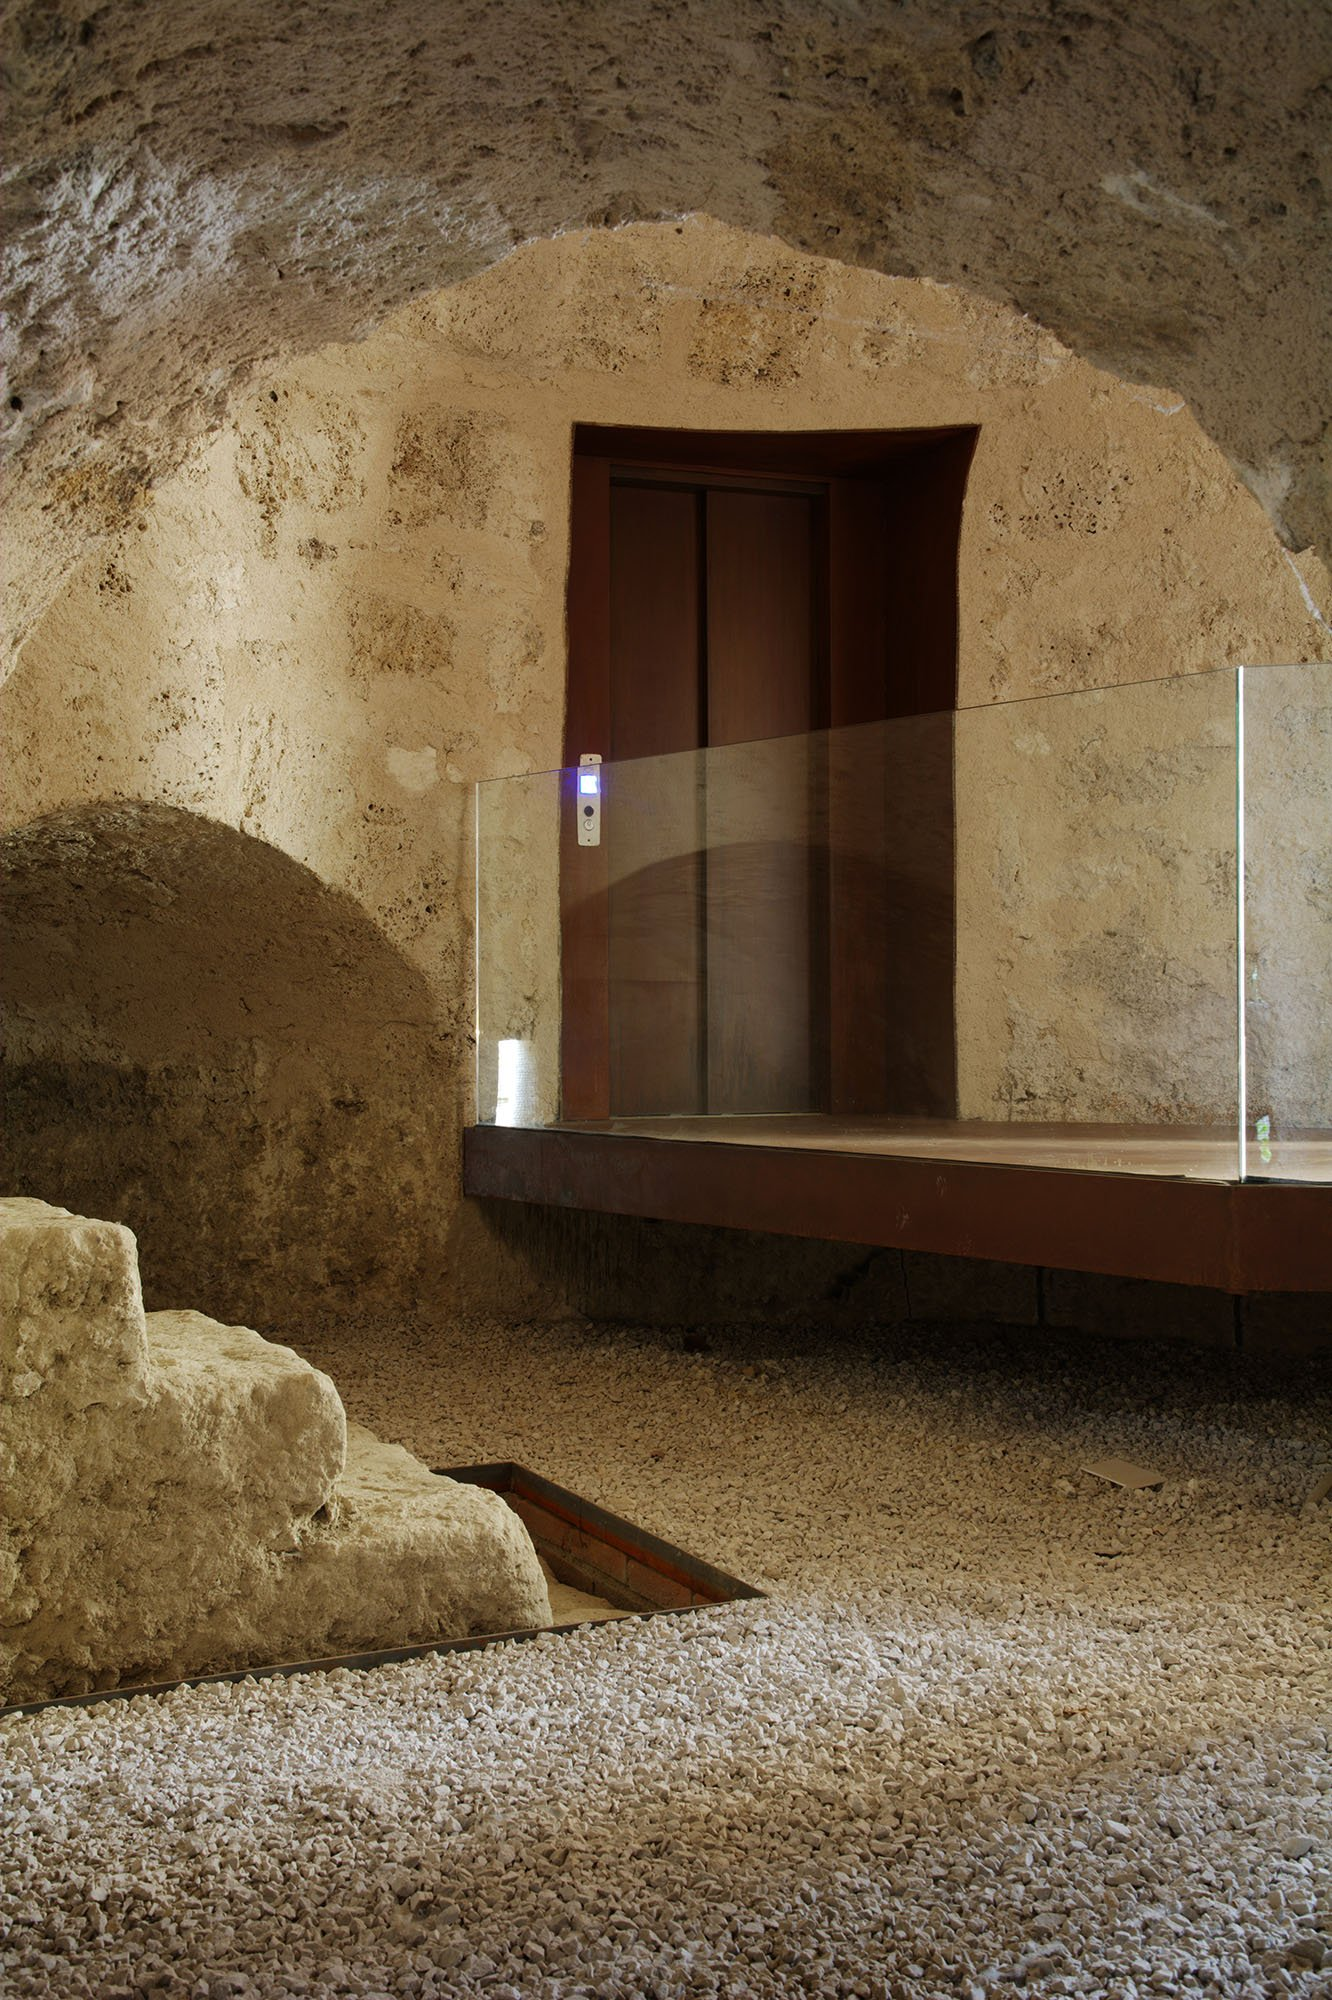 Torre Aragonese: a modern language that dialogues with history